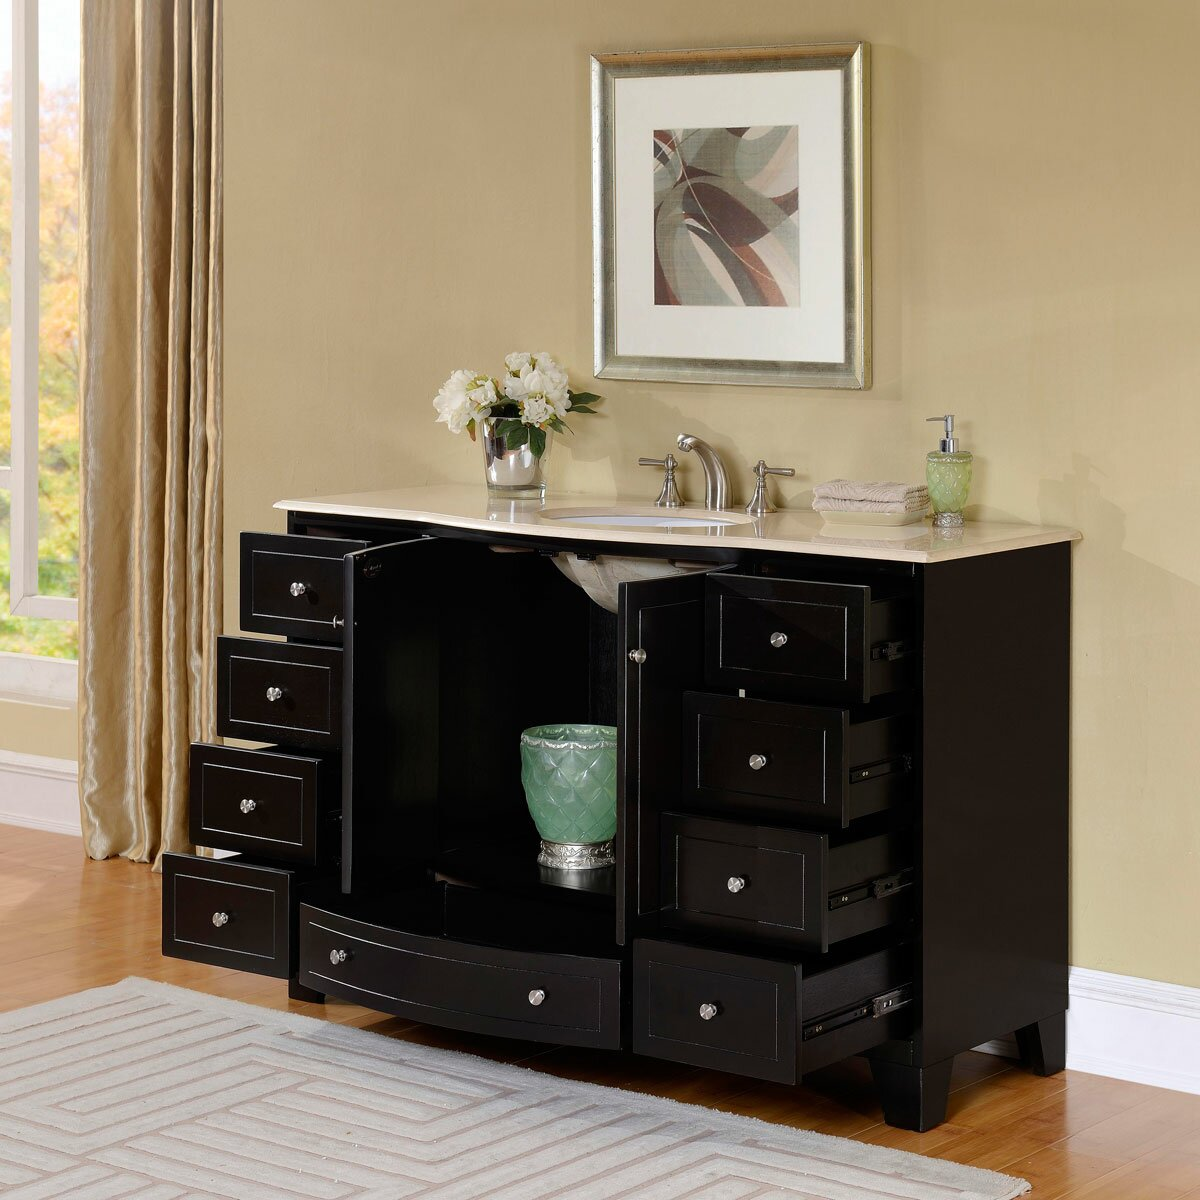 Silkroad Exclusive 55 Single Sink Cabinet Bathroom Vanity